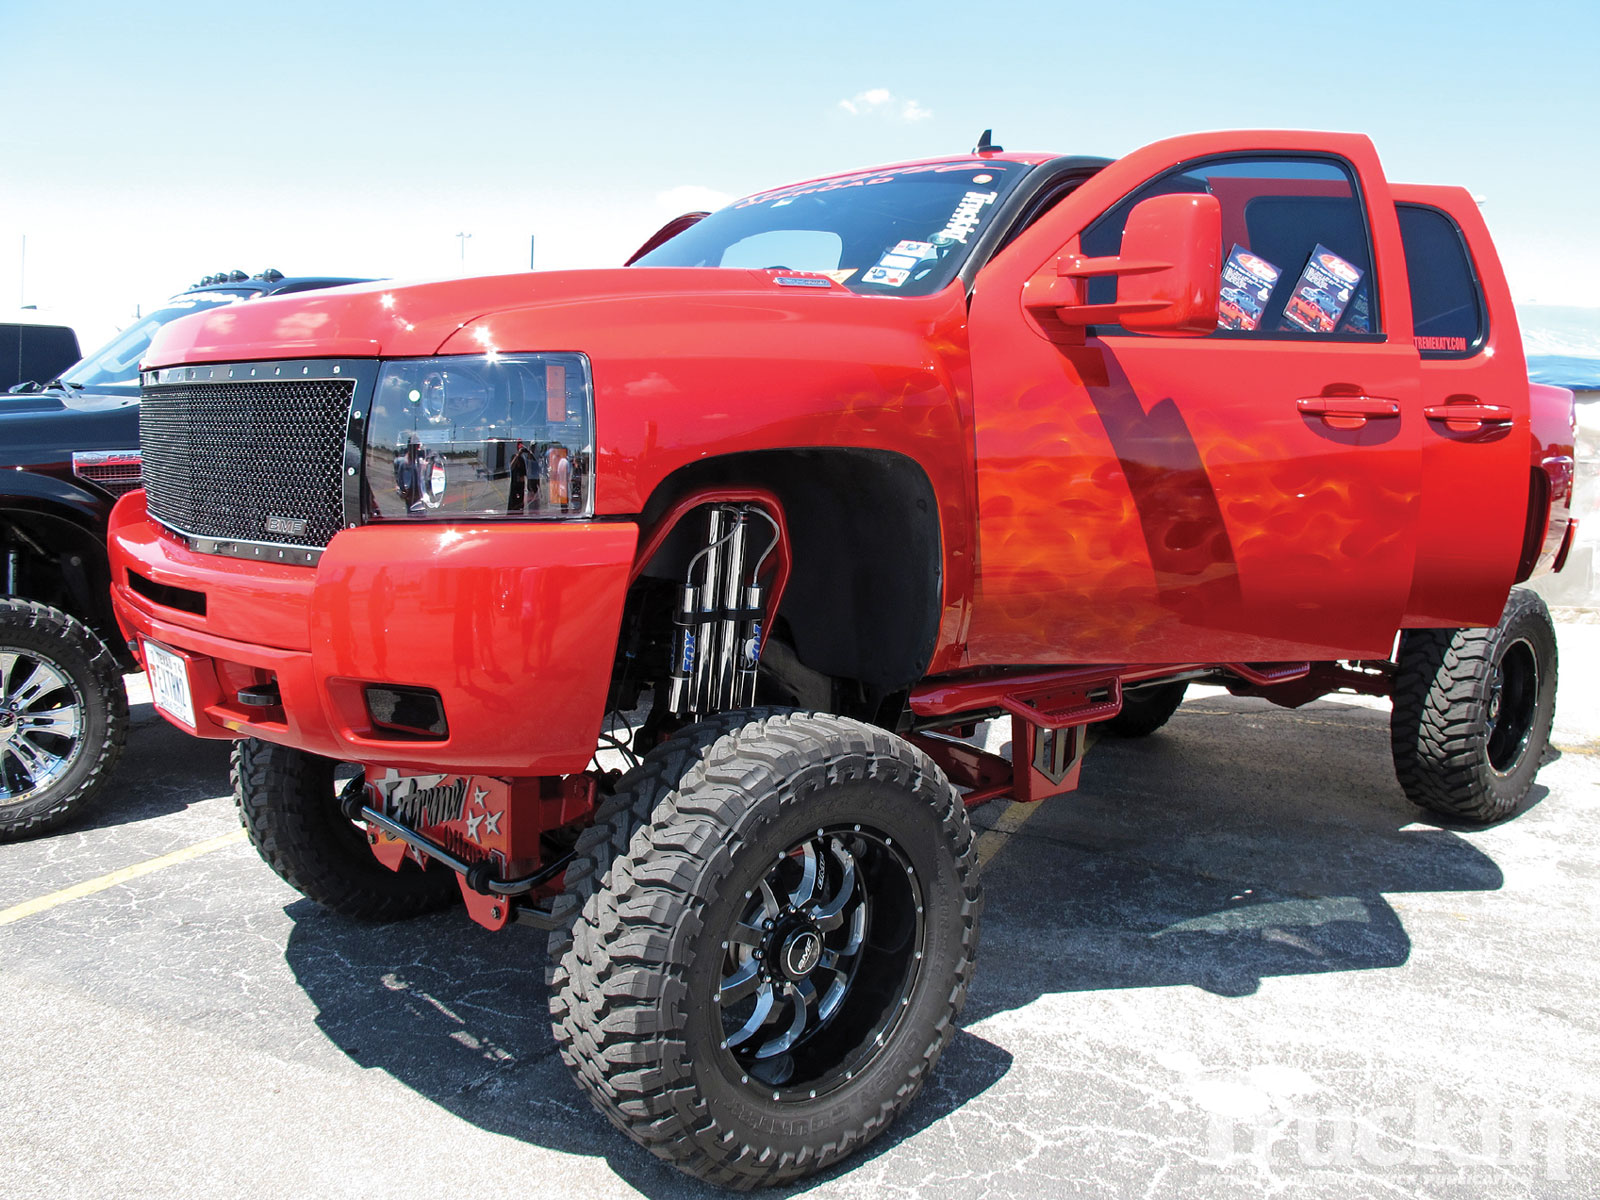 Socaltruckscom   Lifted Truck Classifieds CHEVY   Lifted 1600x1200